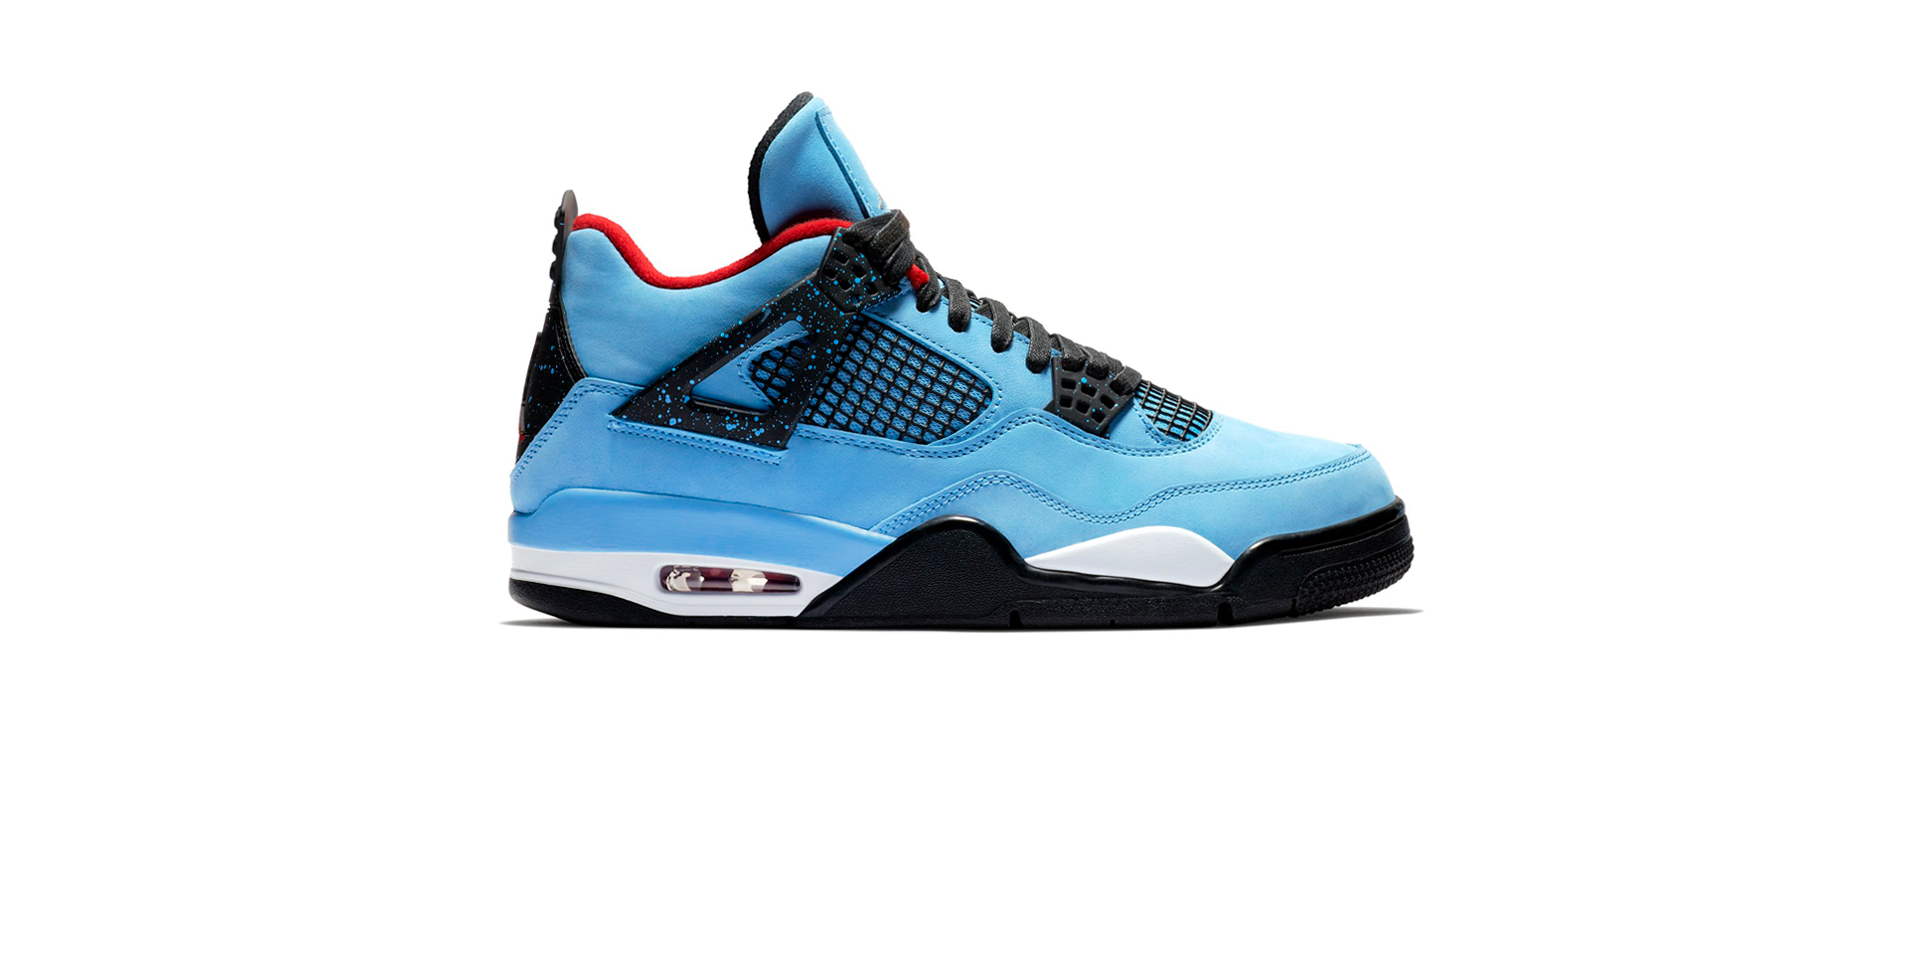 AIR JORDAN 4 RETRO UNIVERSITY BLUE/BLACK-VARSITY RED